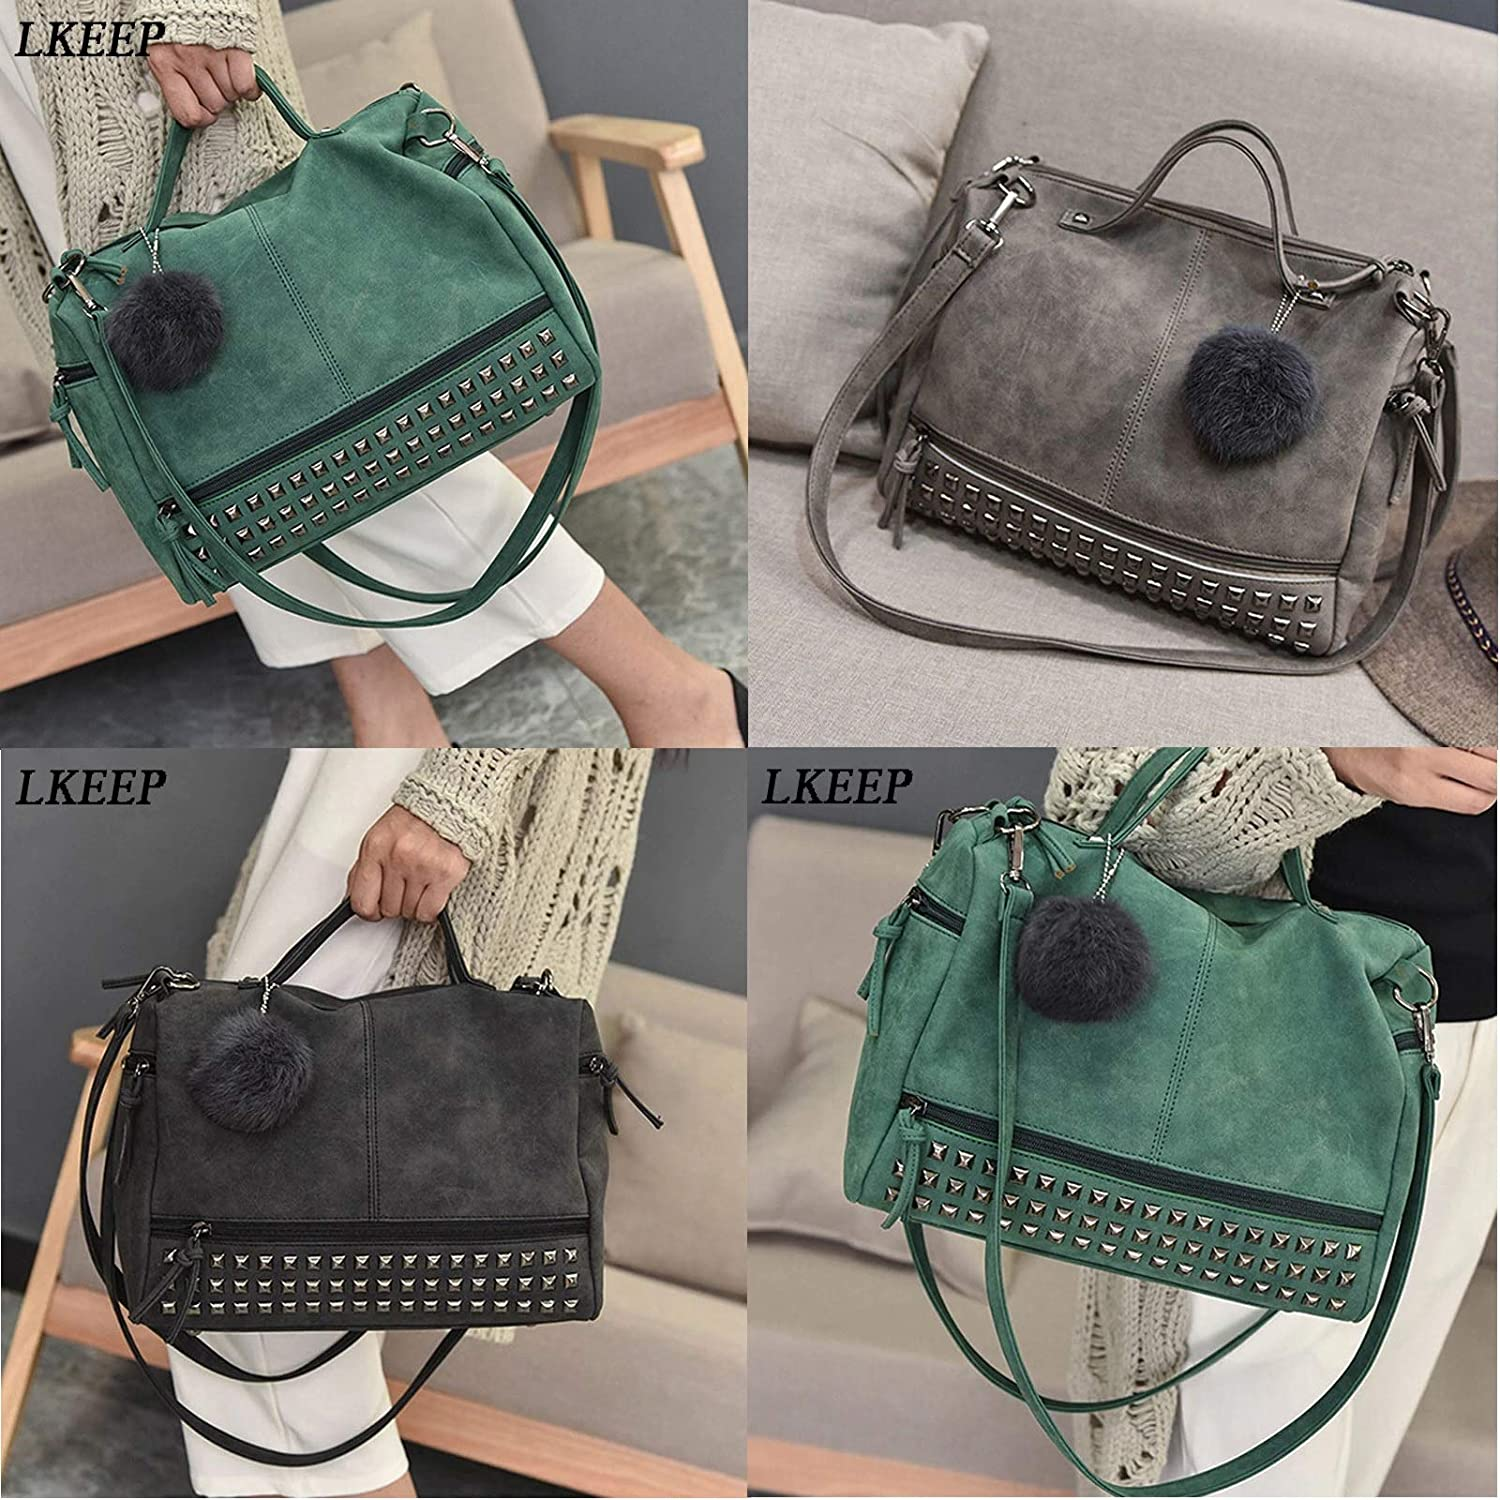 PU Leather Women's Bag Rivet Larger Ladies Handbags Hair Ball Shoulder Bag Motorcycle Crossbody Bags For Women Messenger